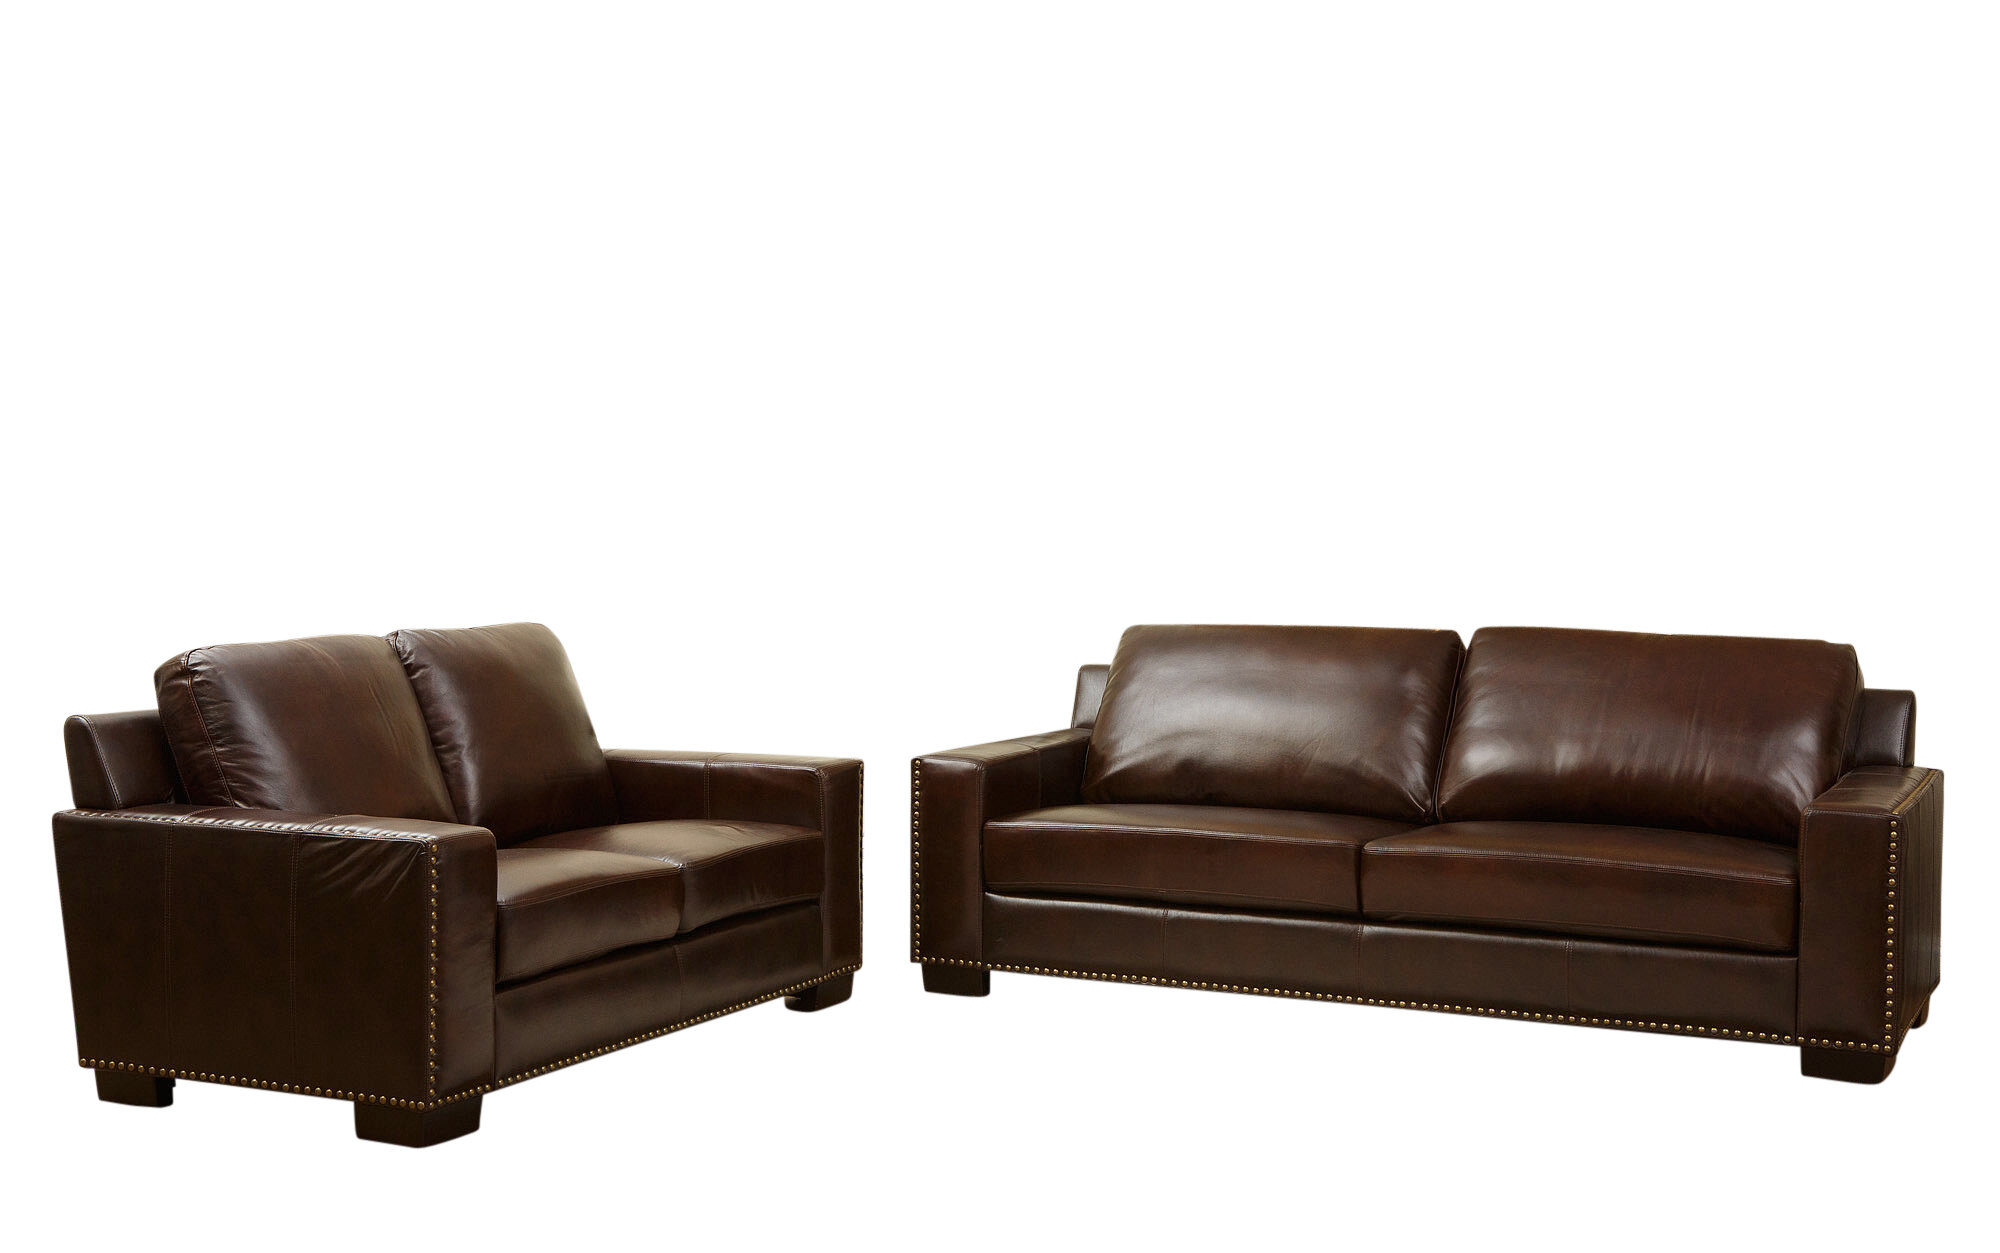 Darby Home Co William 2 Piece Leather Living Room Set | Wayfair